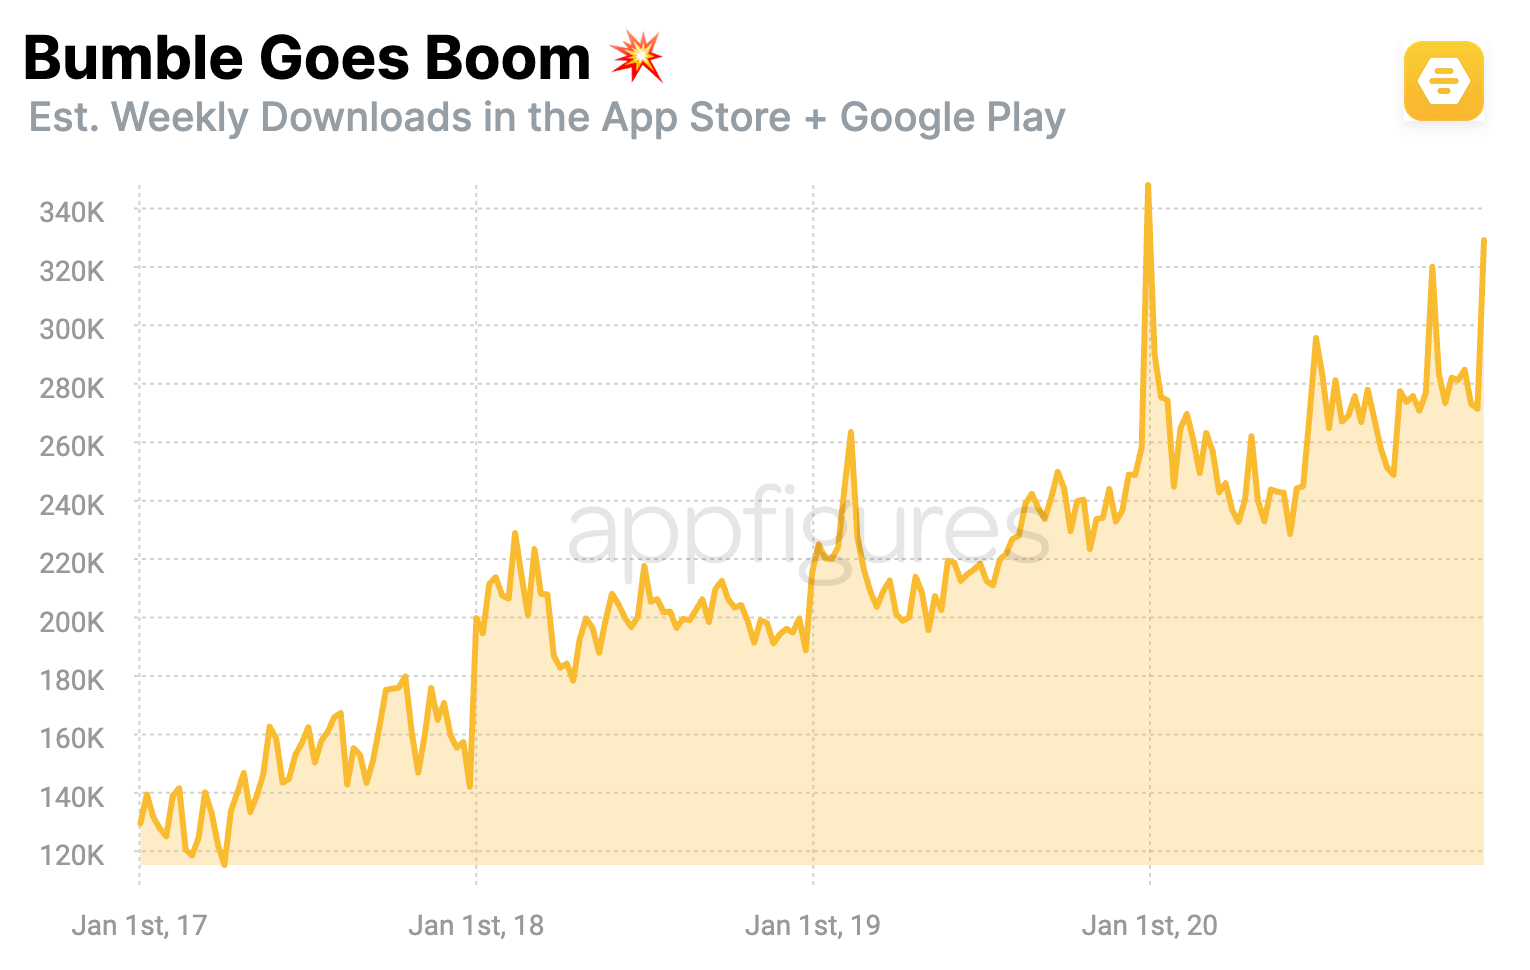 Bumble - Monthly estimated downloads in the App Store and Google Play